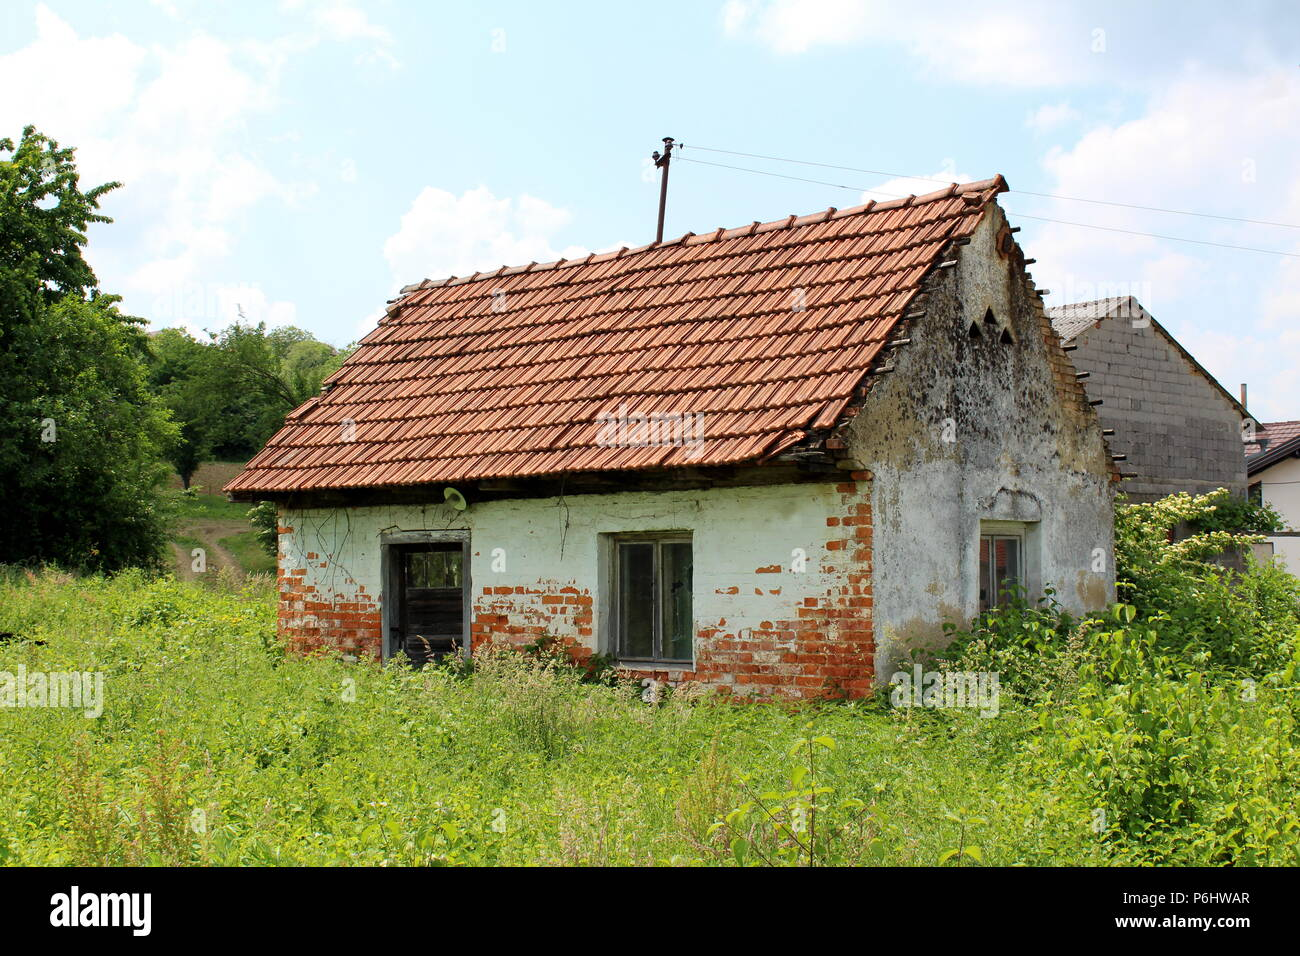 Missing Roof Tiles High Resolution Stock Photography And Images Alamy